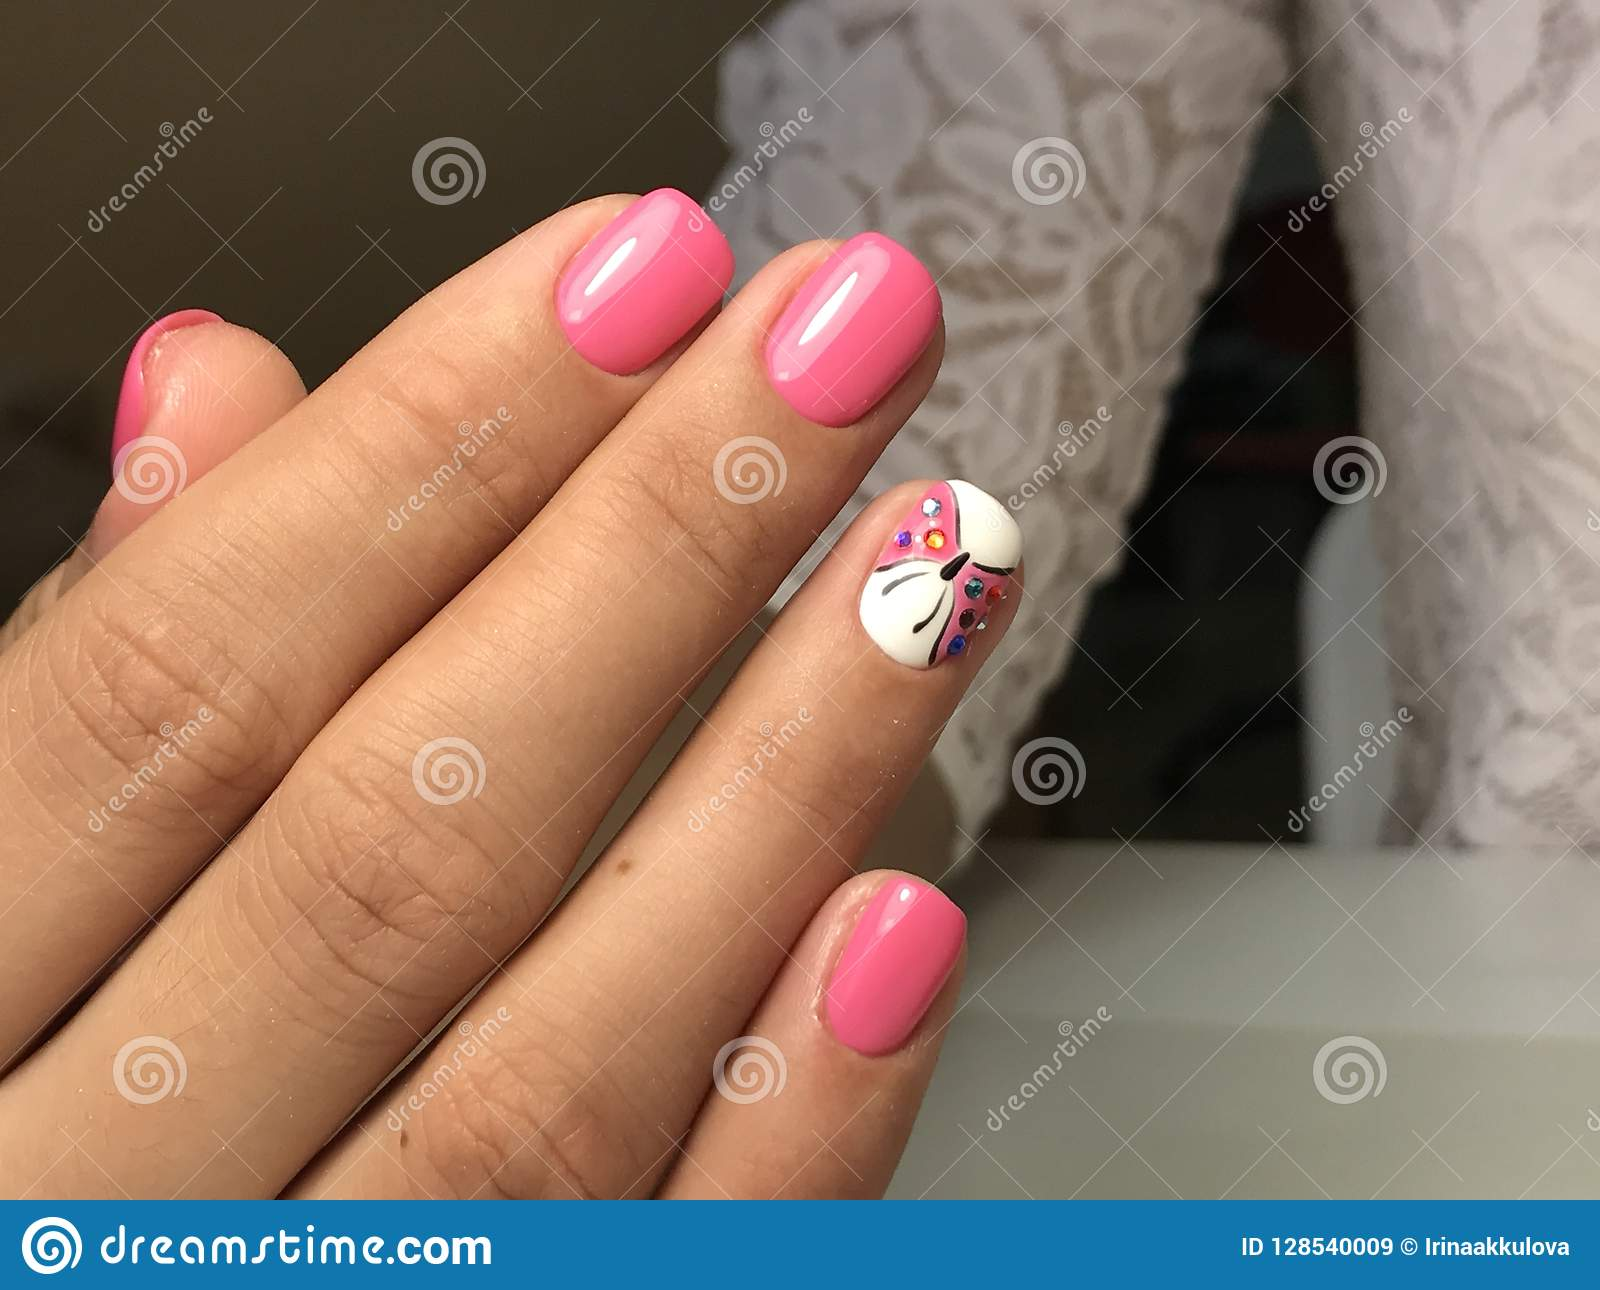 Nail art ideas, butterfly stock image. Image of ideas - 128540009